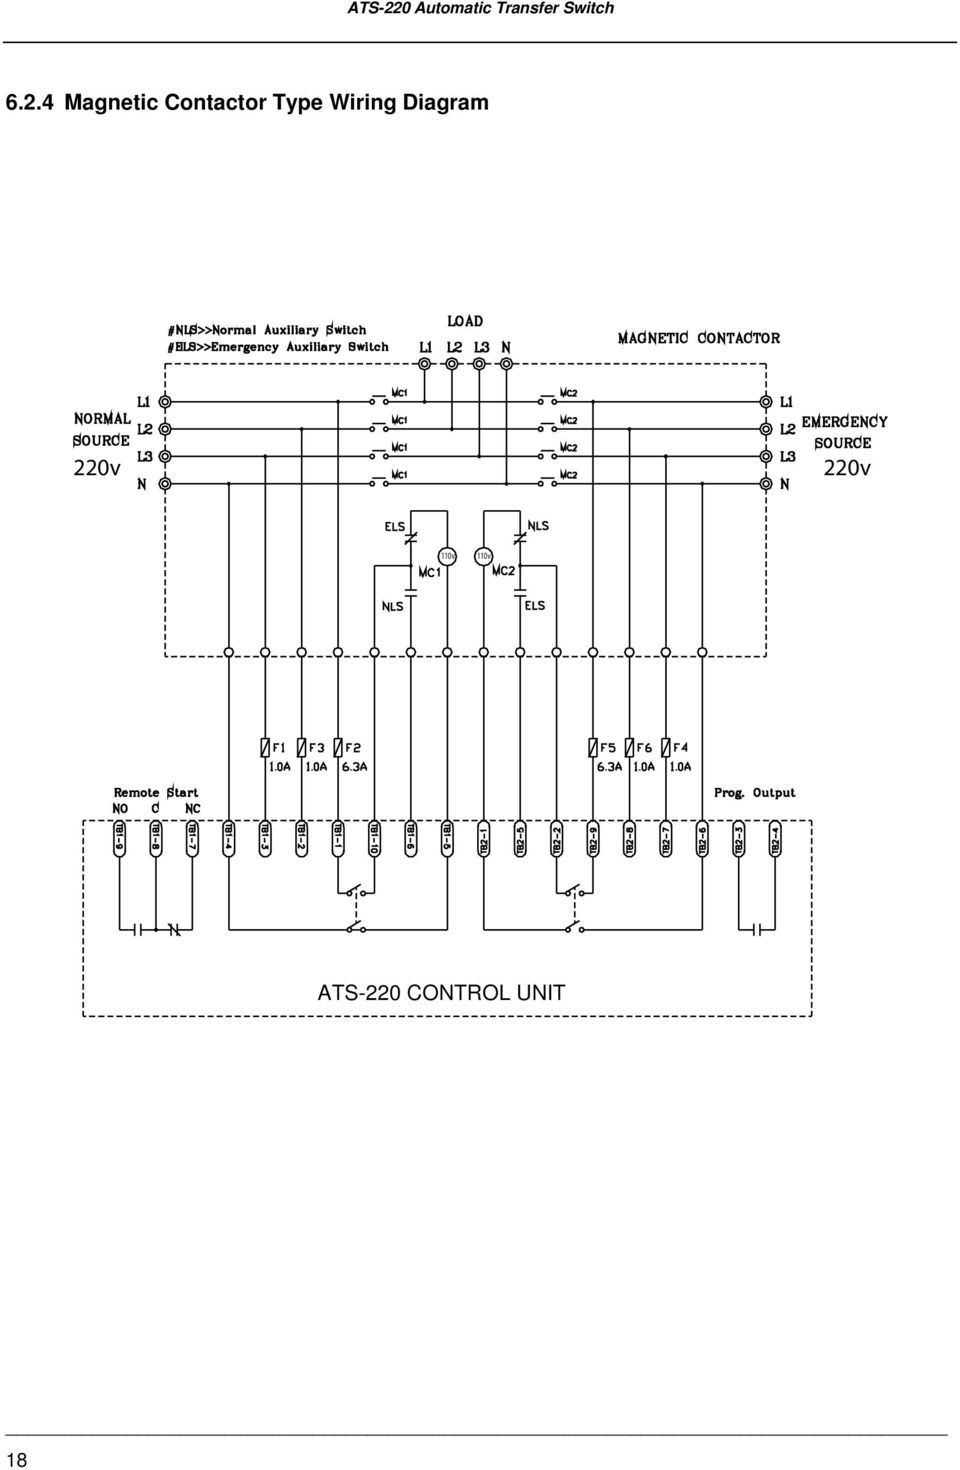 medium resolution of 19 6 3 3p 380v connecting wire diagram mccb type wiring diagram motor normal phase n emergency